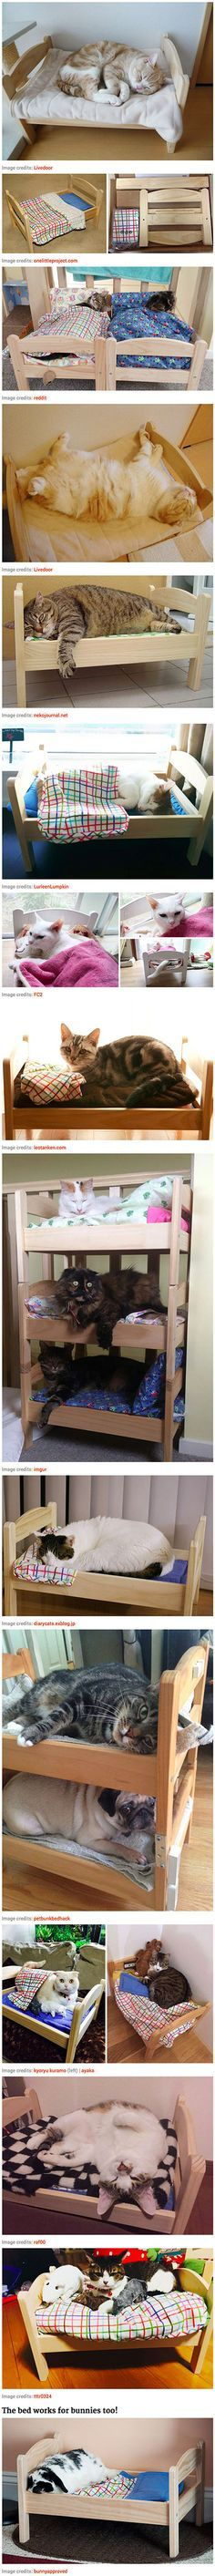 DIY Cat Scratching Post That Literally Lasts For Years Diy Cat - 22 awesome pieces furniture every cat owner will love